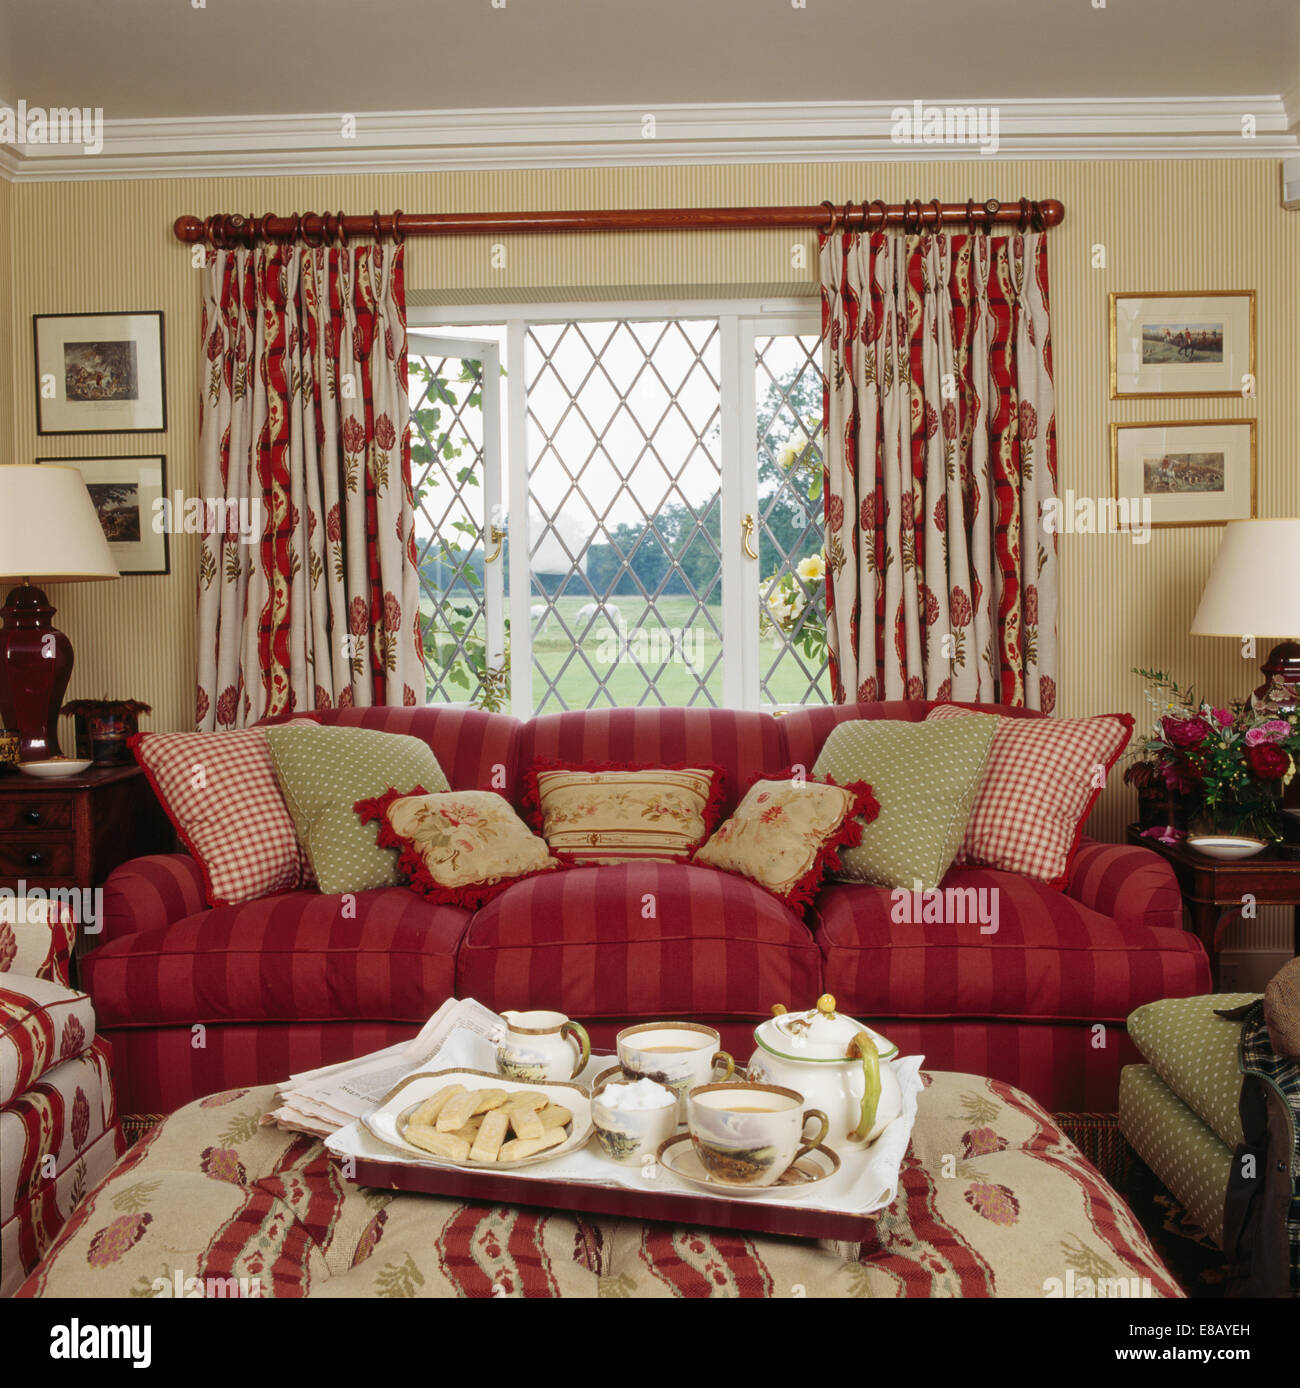 Stock Photo   Tea Tray On Stool In Front Of Red Sofa And Lattice Window  With Patterned Curtains In Cottage Living Room Part 69